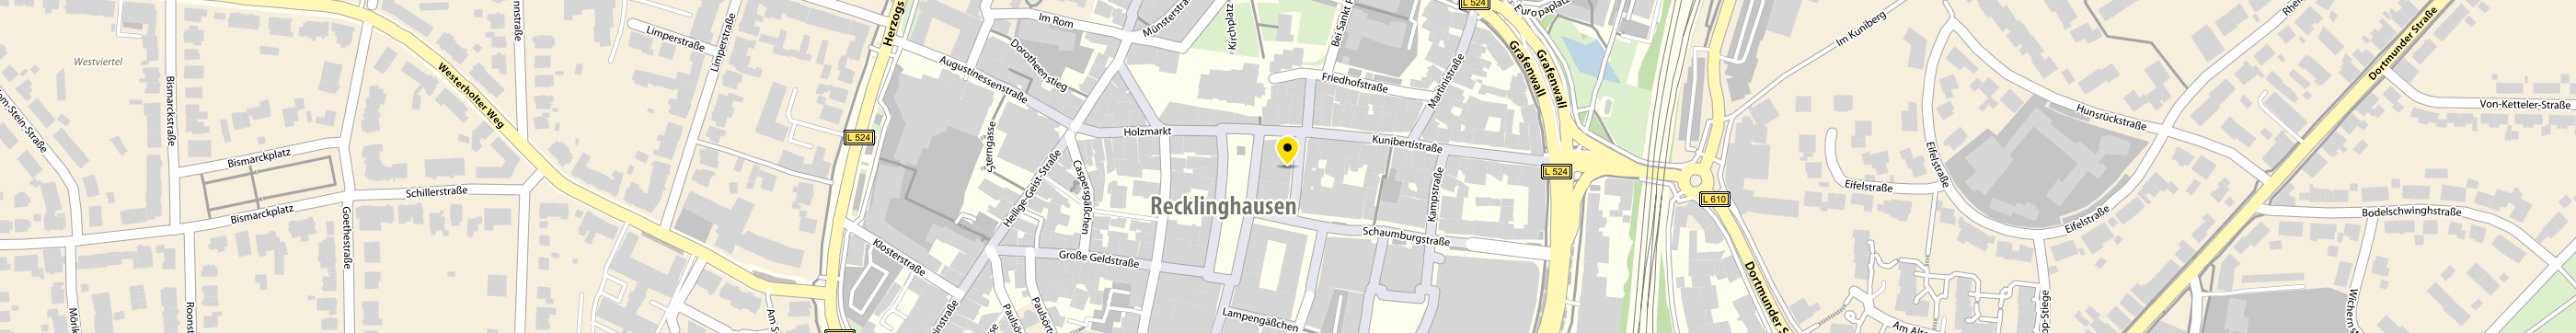 LEOS in Recklinghausen-Stadtmitte Karte